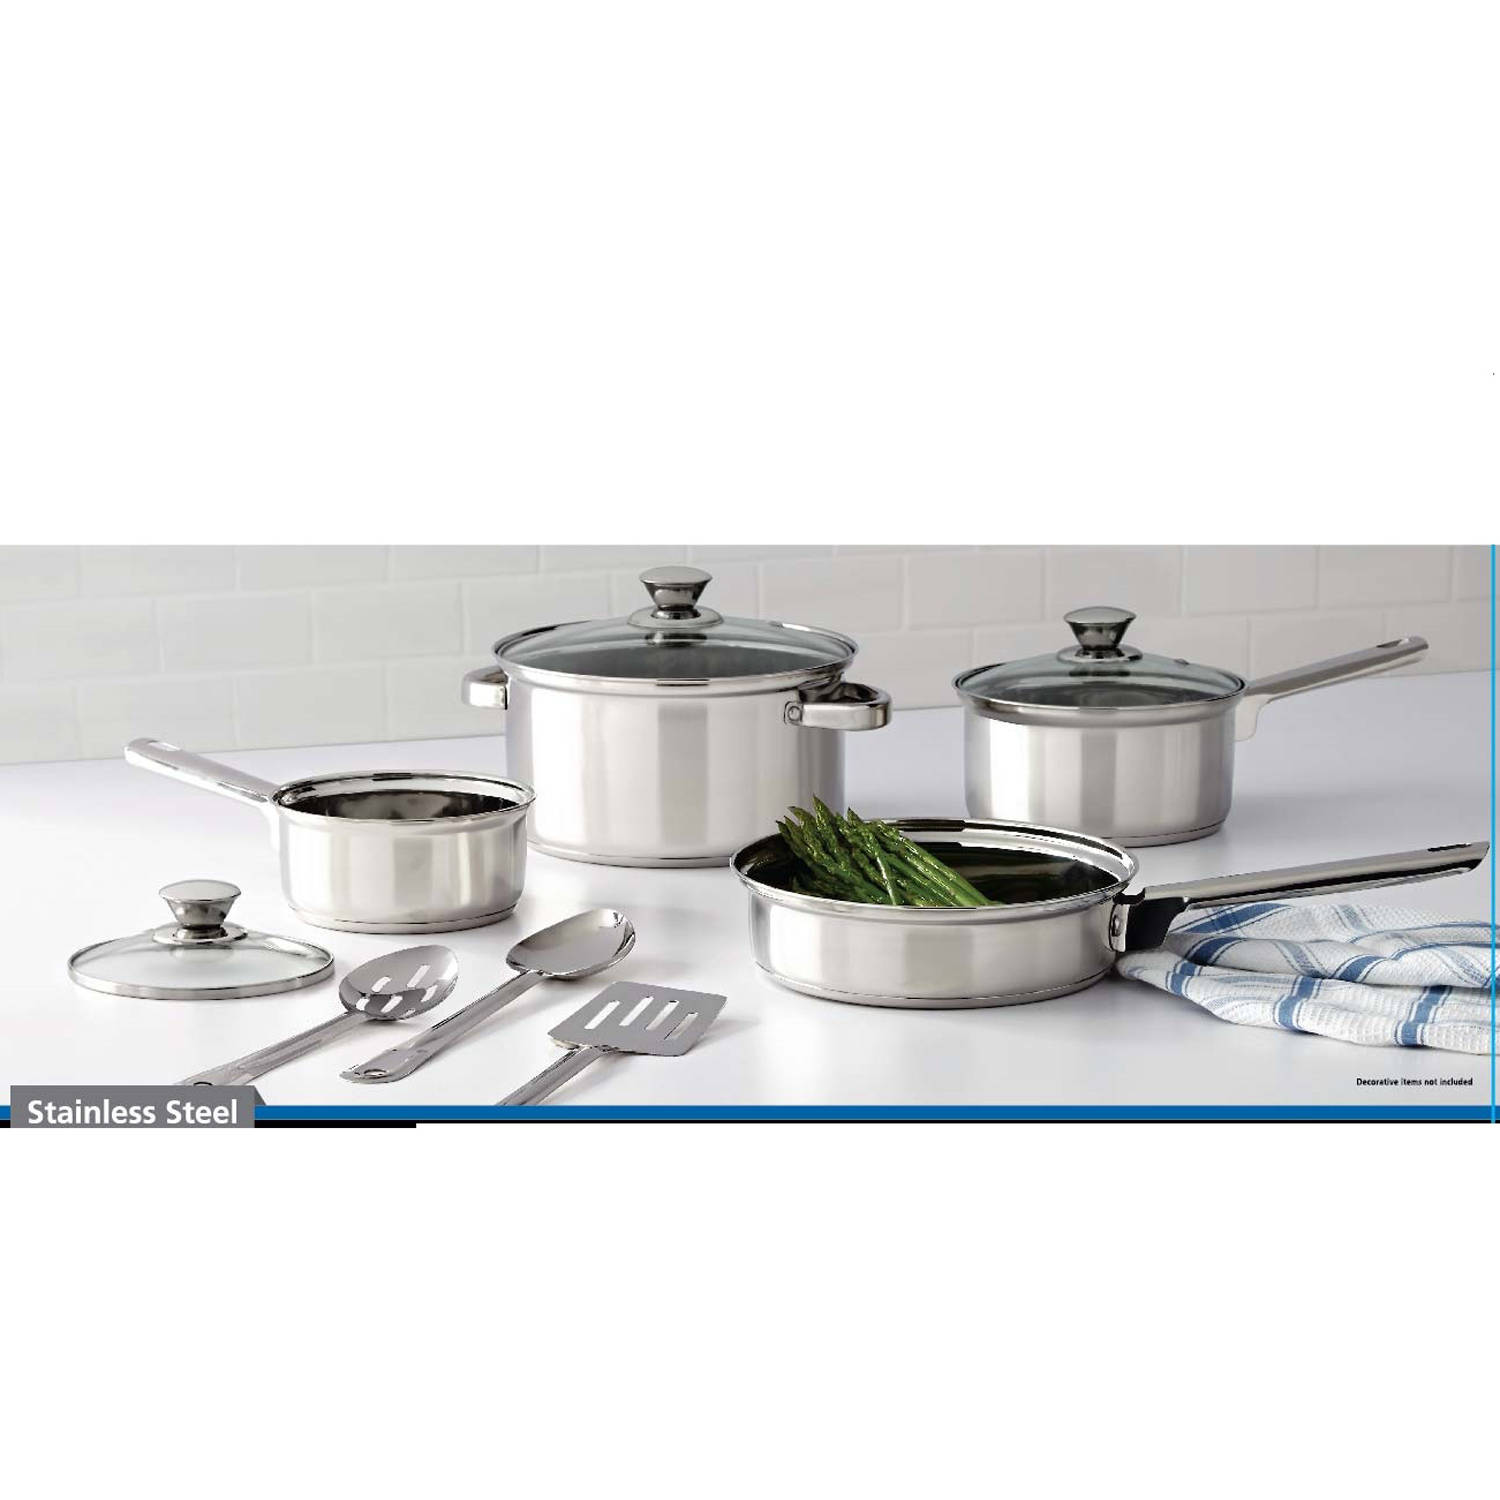 Mainstays 10-Piece Stainless Steel Cookware Set by MAINSTAYS